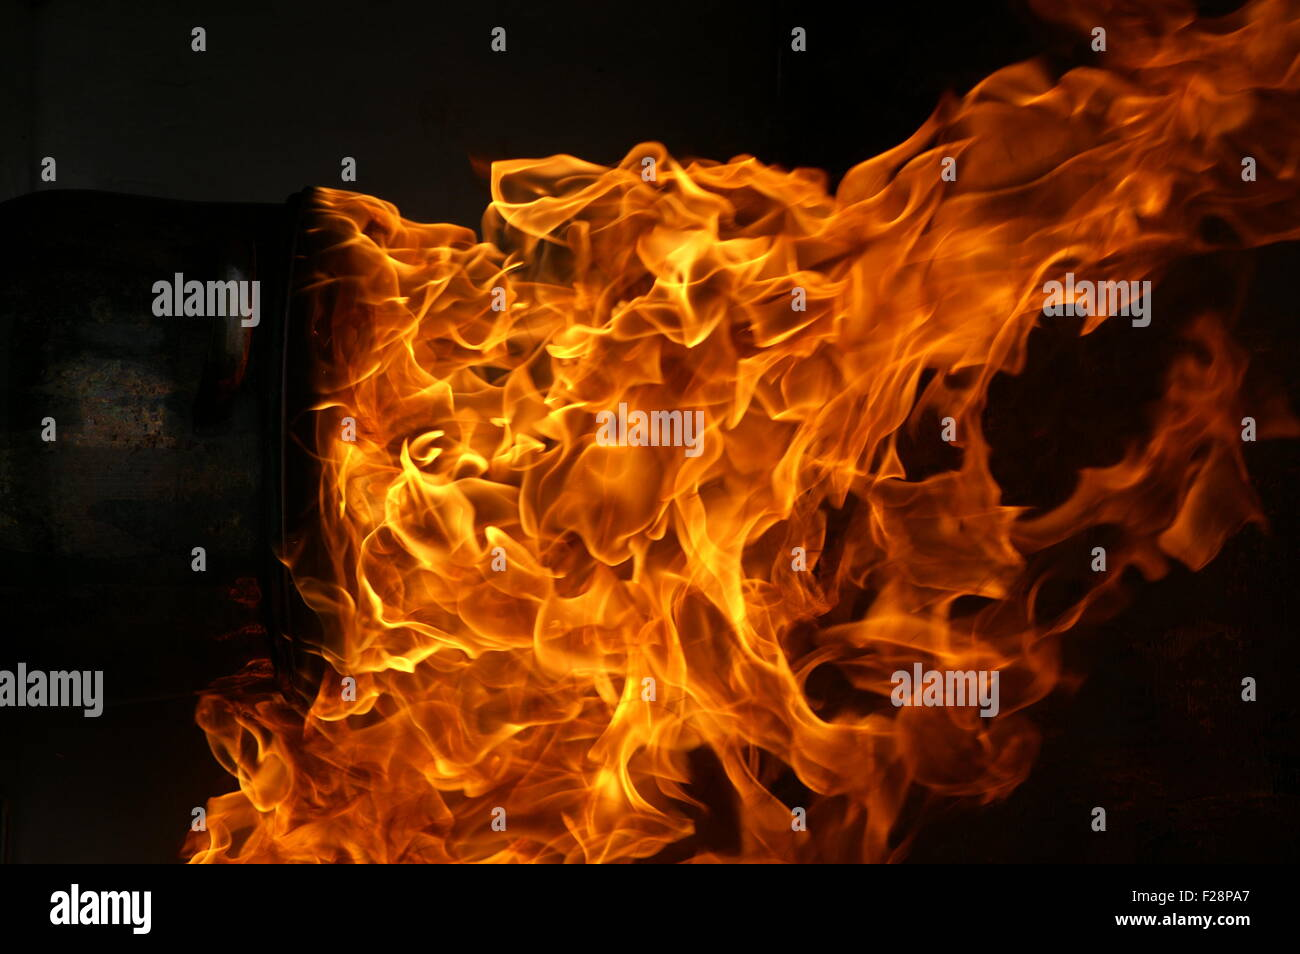 explosion, fire and flames - Stock Image